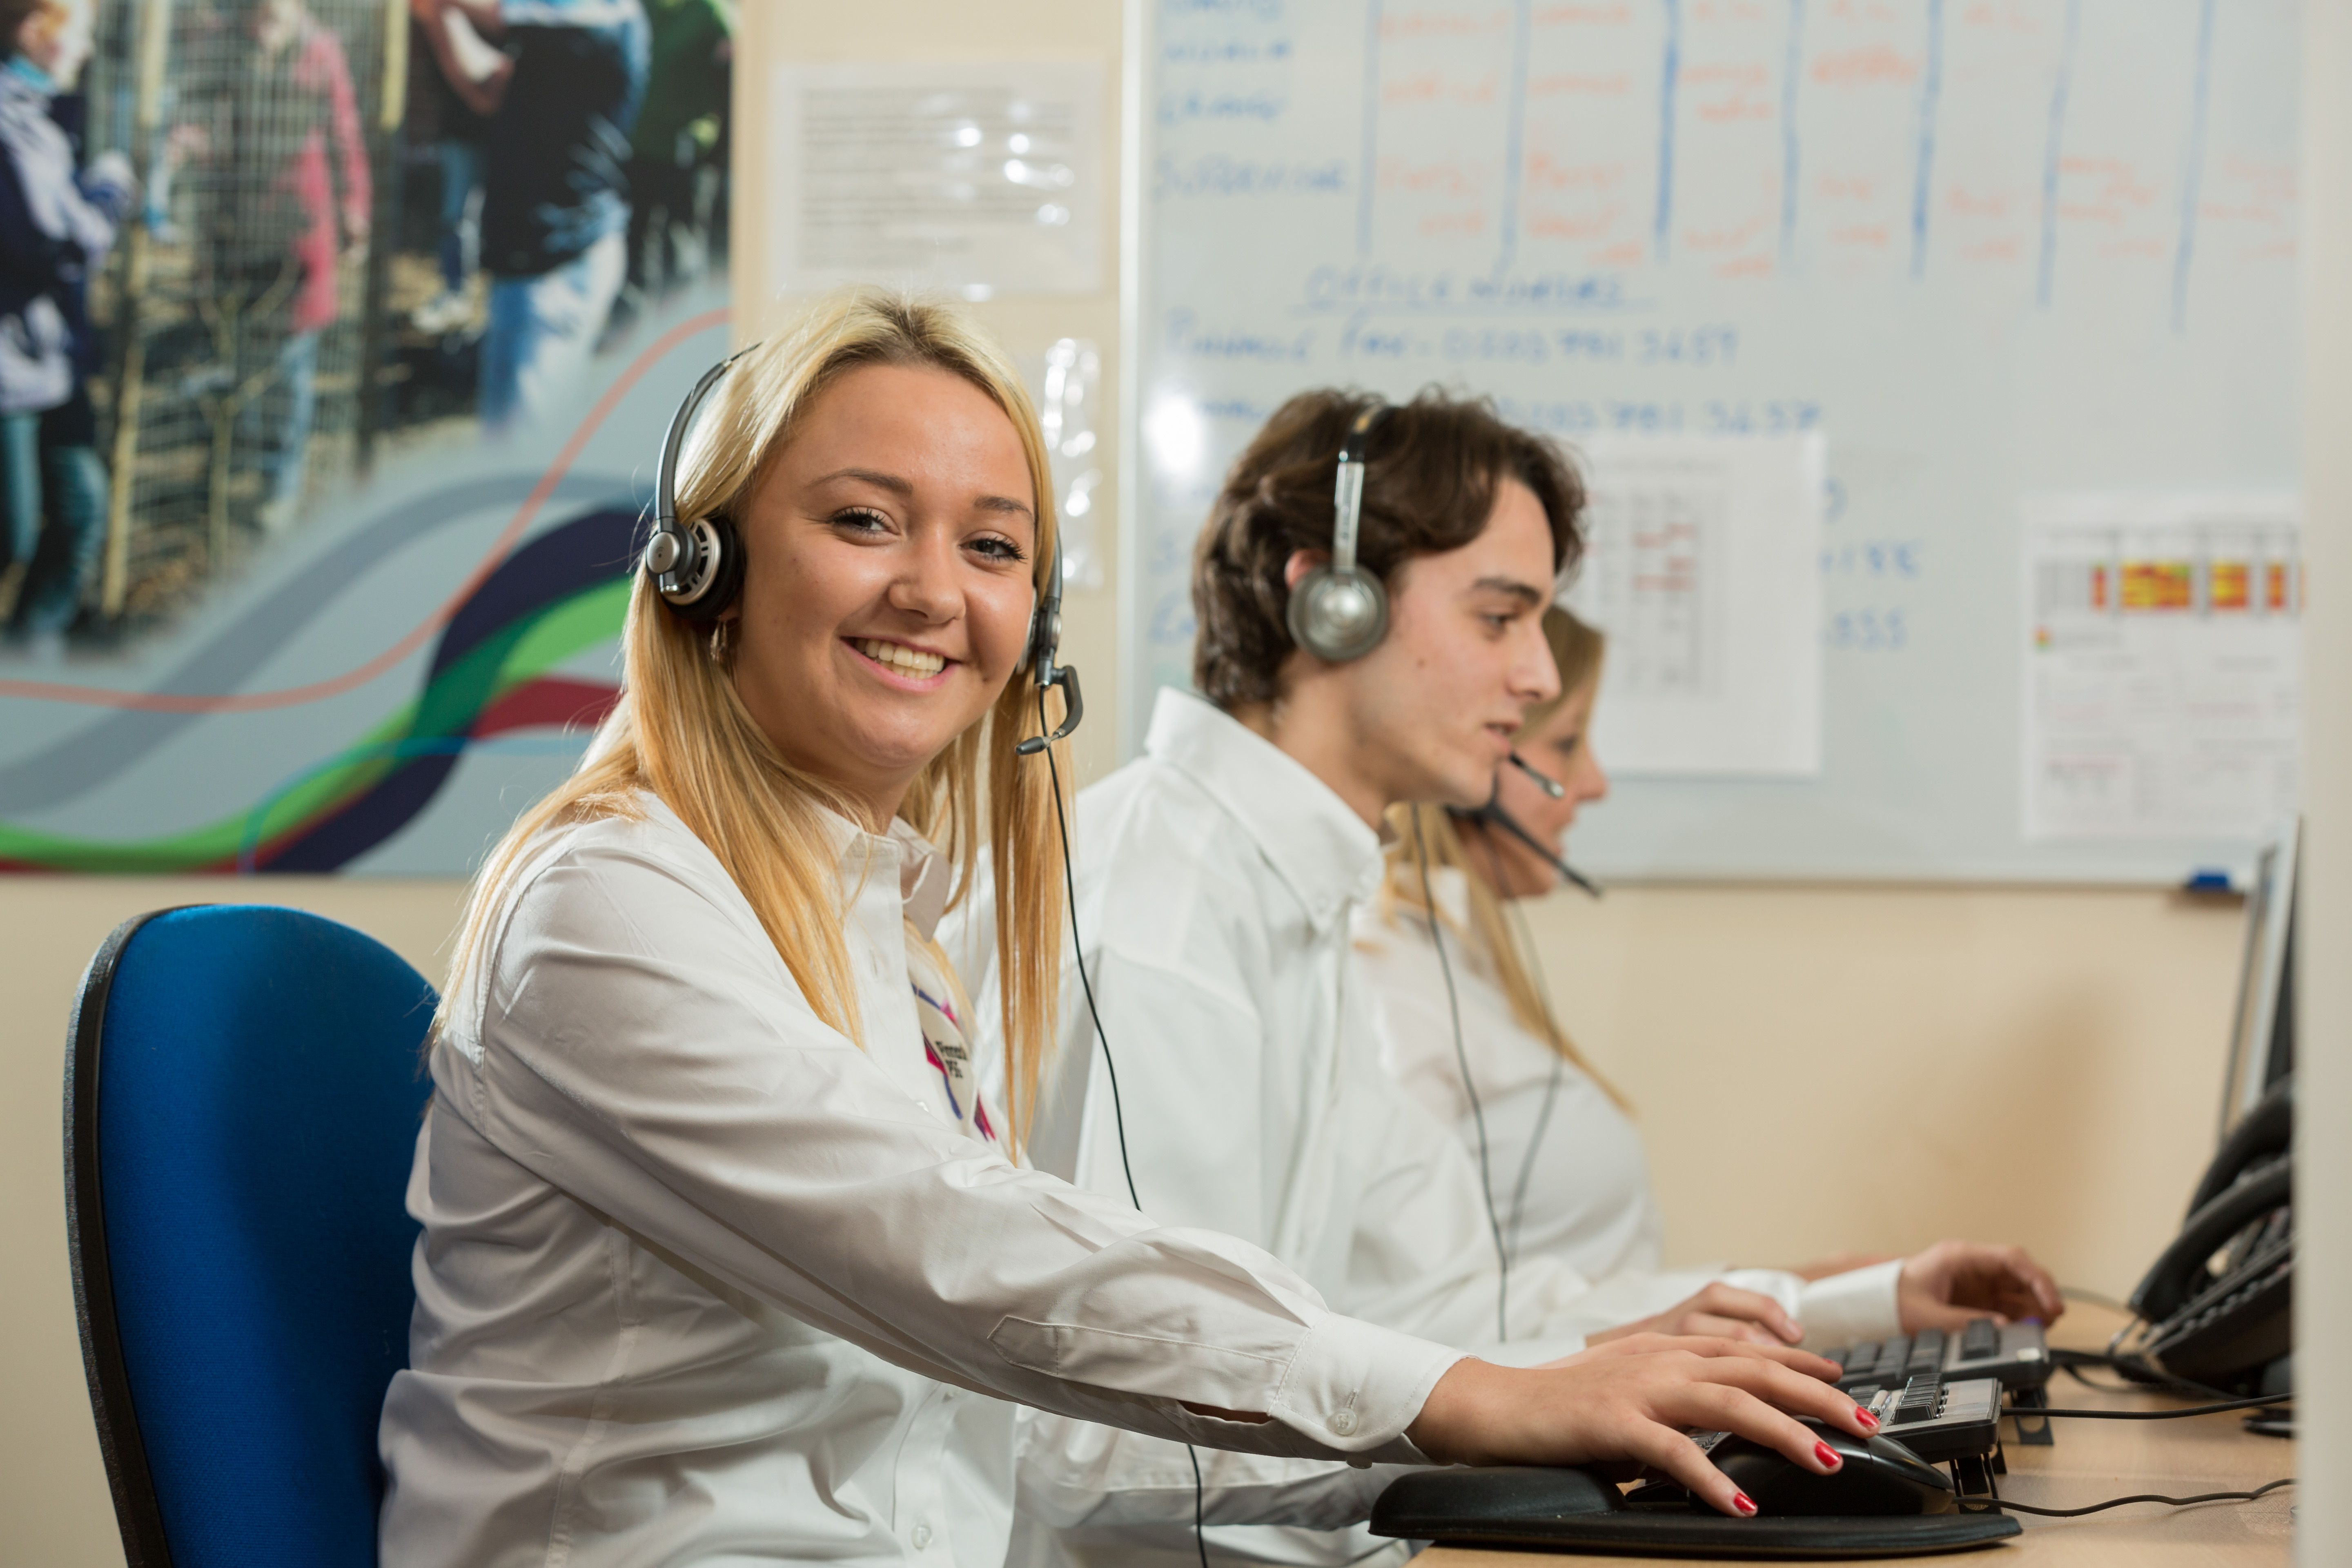 Pinnacle Connect - Pinnacle PSG's 24/7 contact centre services